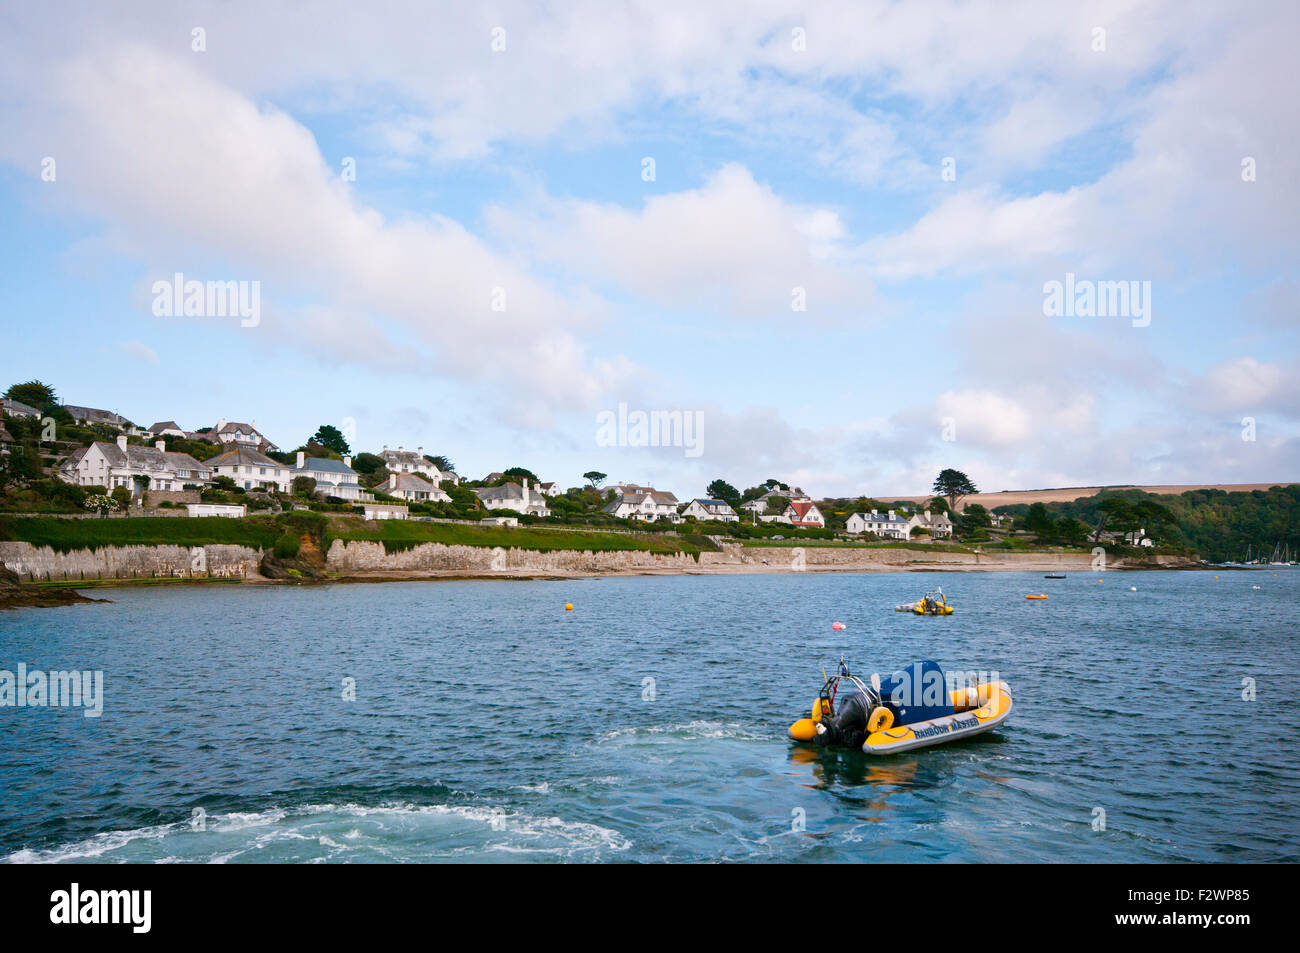 St Mawes Cornwall England UK - Stock Image